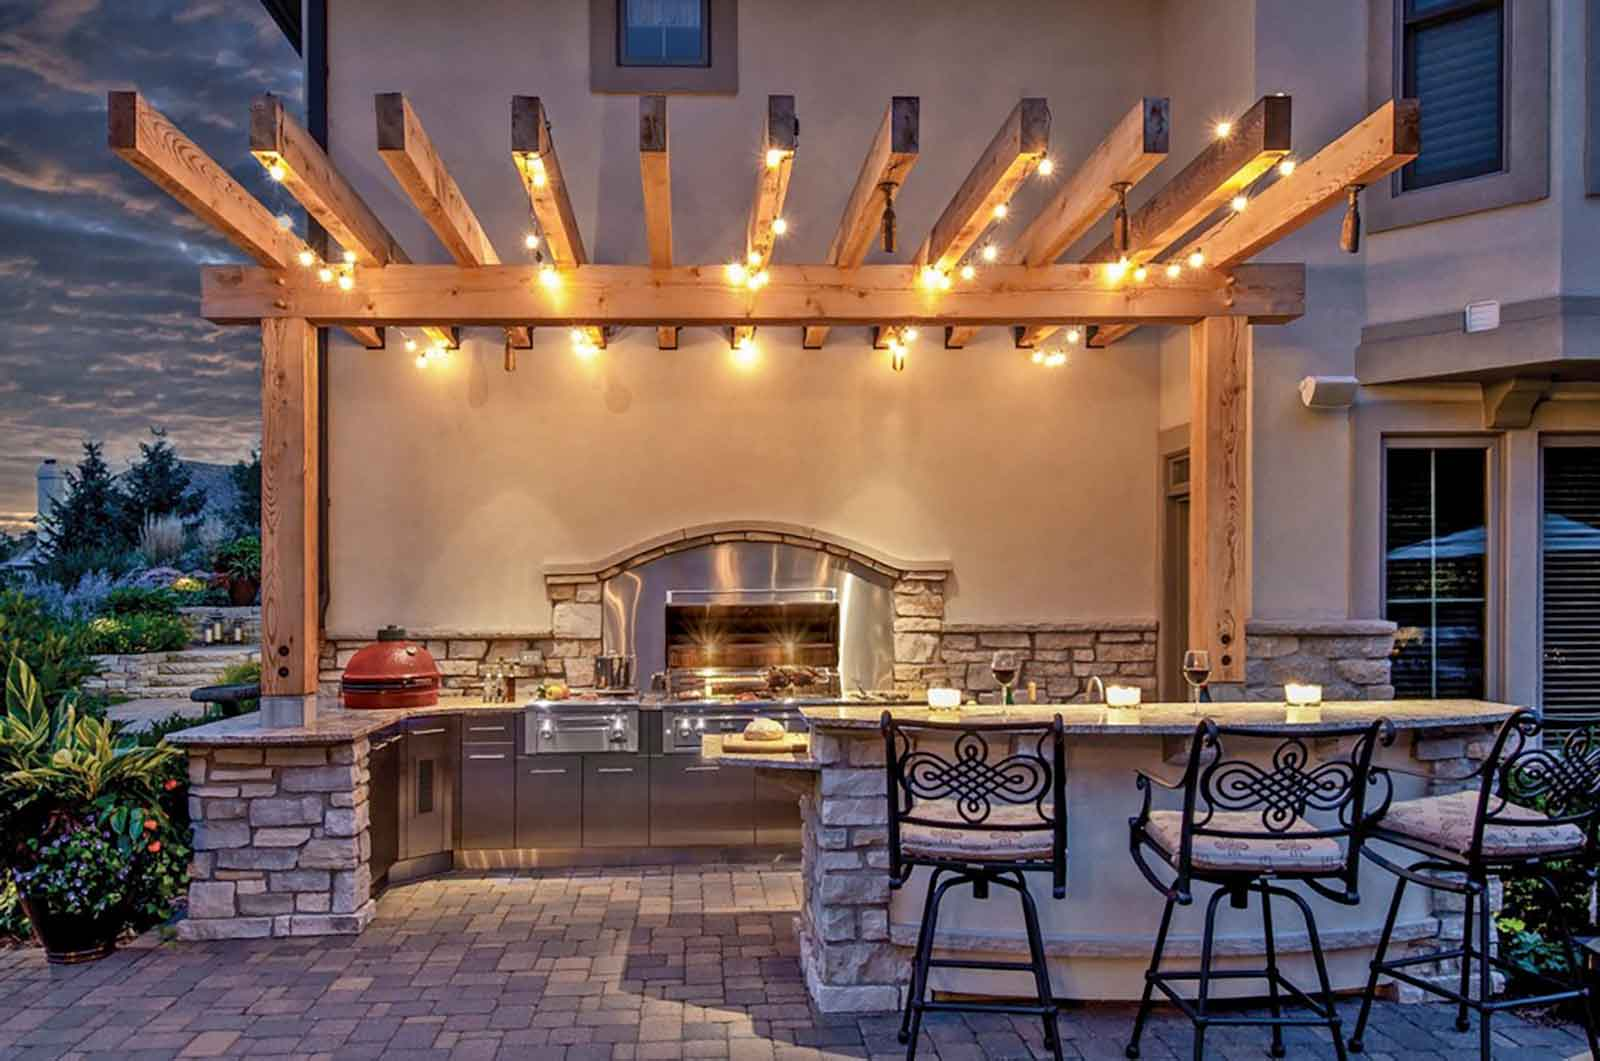 Outdoor kitchen at night with lighting